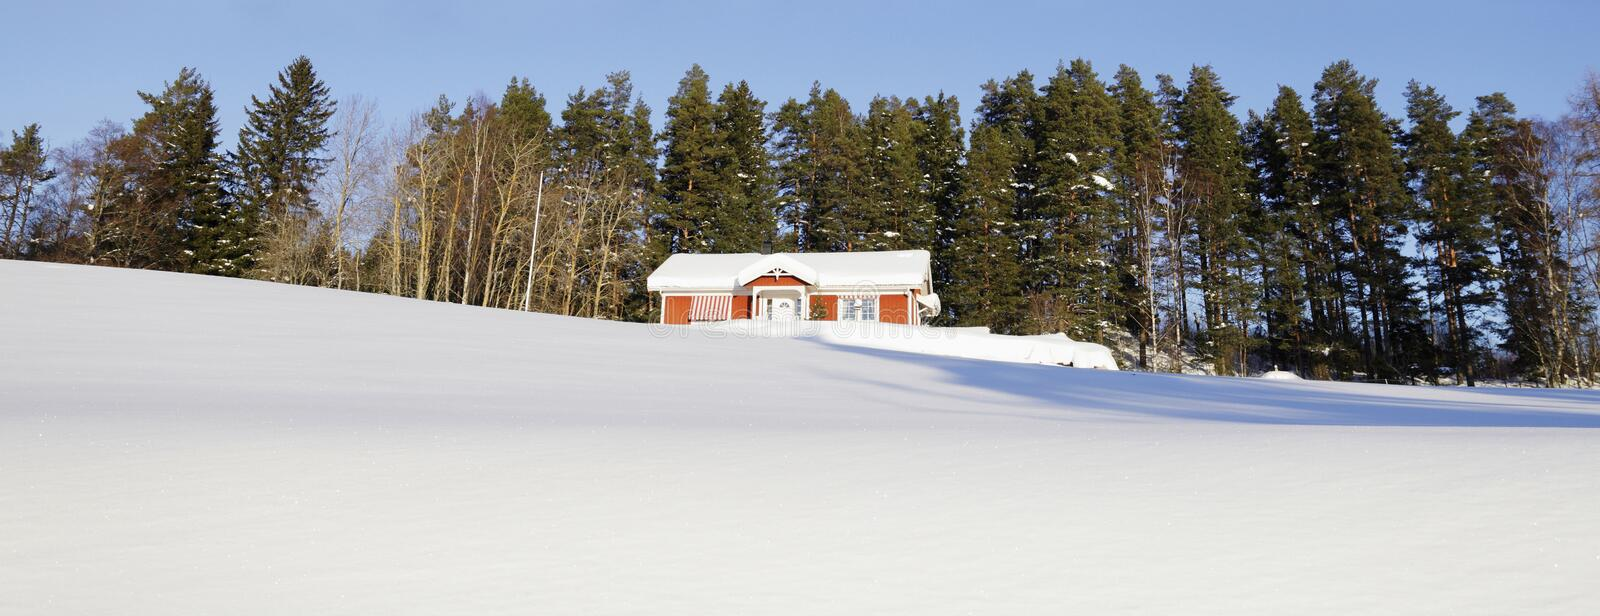 Cottages In Snowy Winter Season Stock Photography